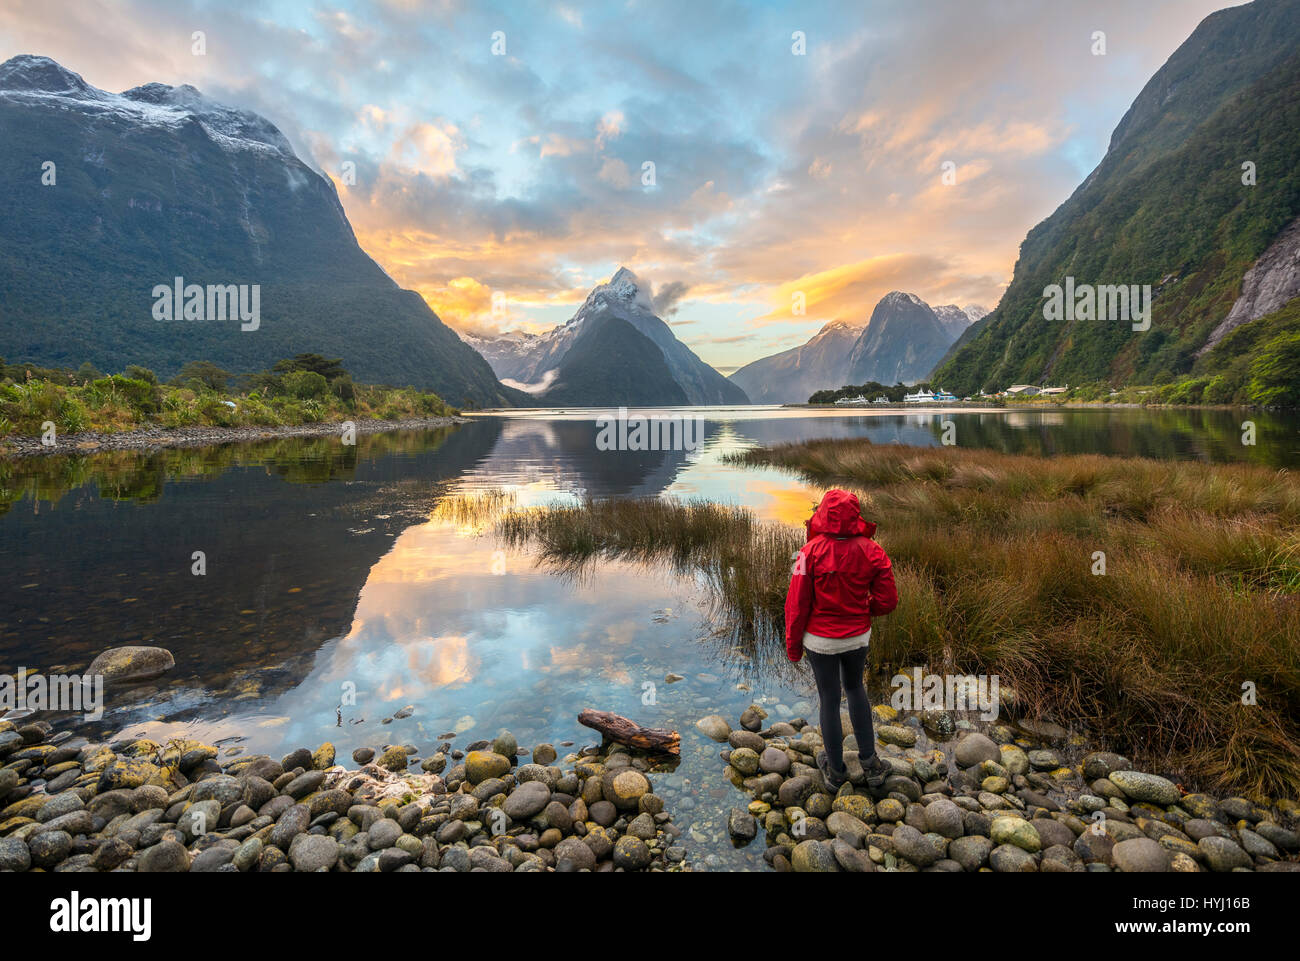 Tourist looking at the landscape, Miter Peak reflected in the water, sunset, Milford Sound, Fiordland National Park, - Stock Image